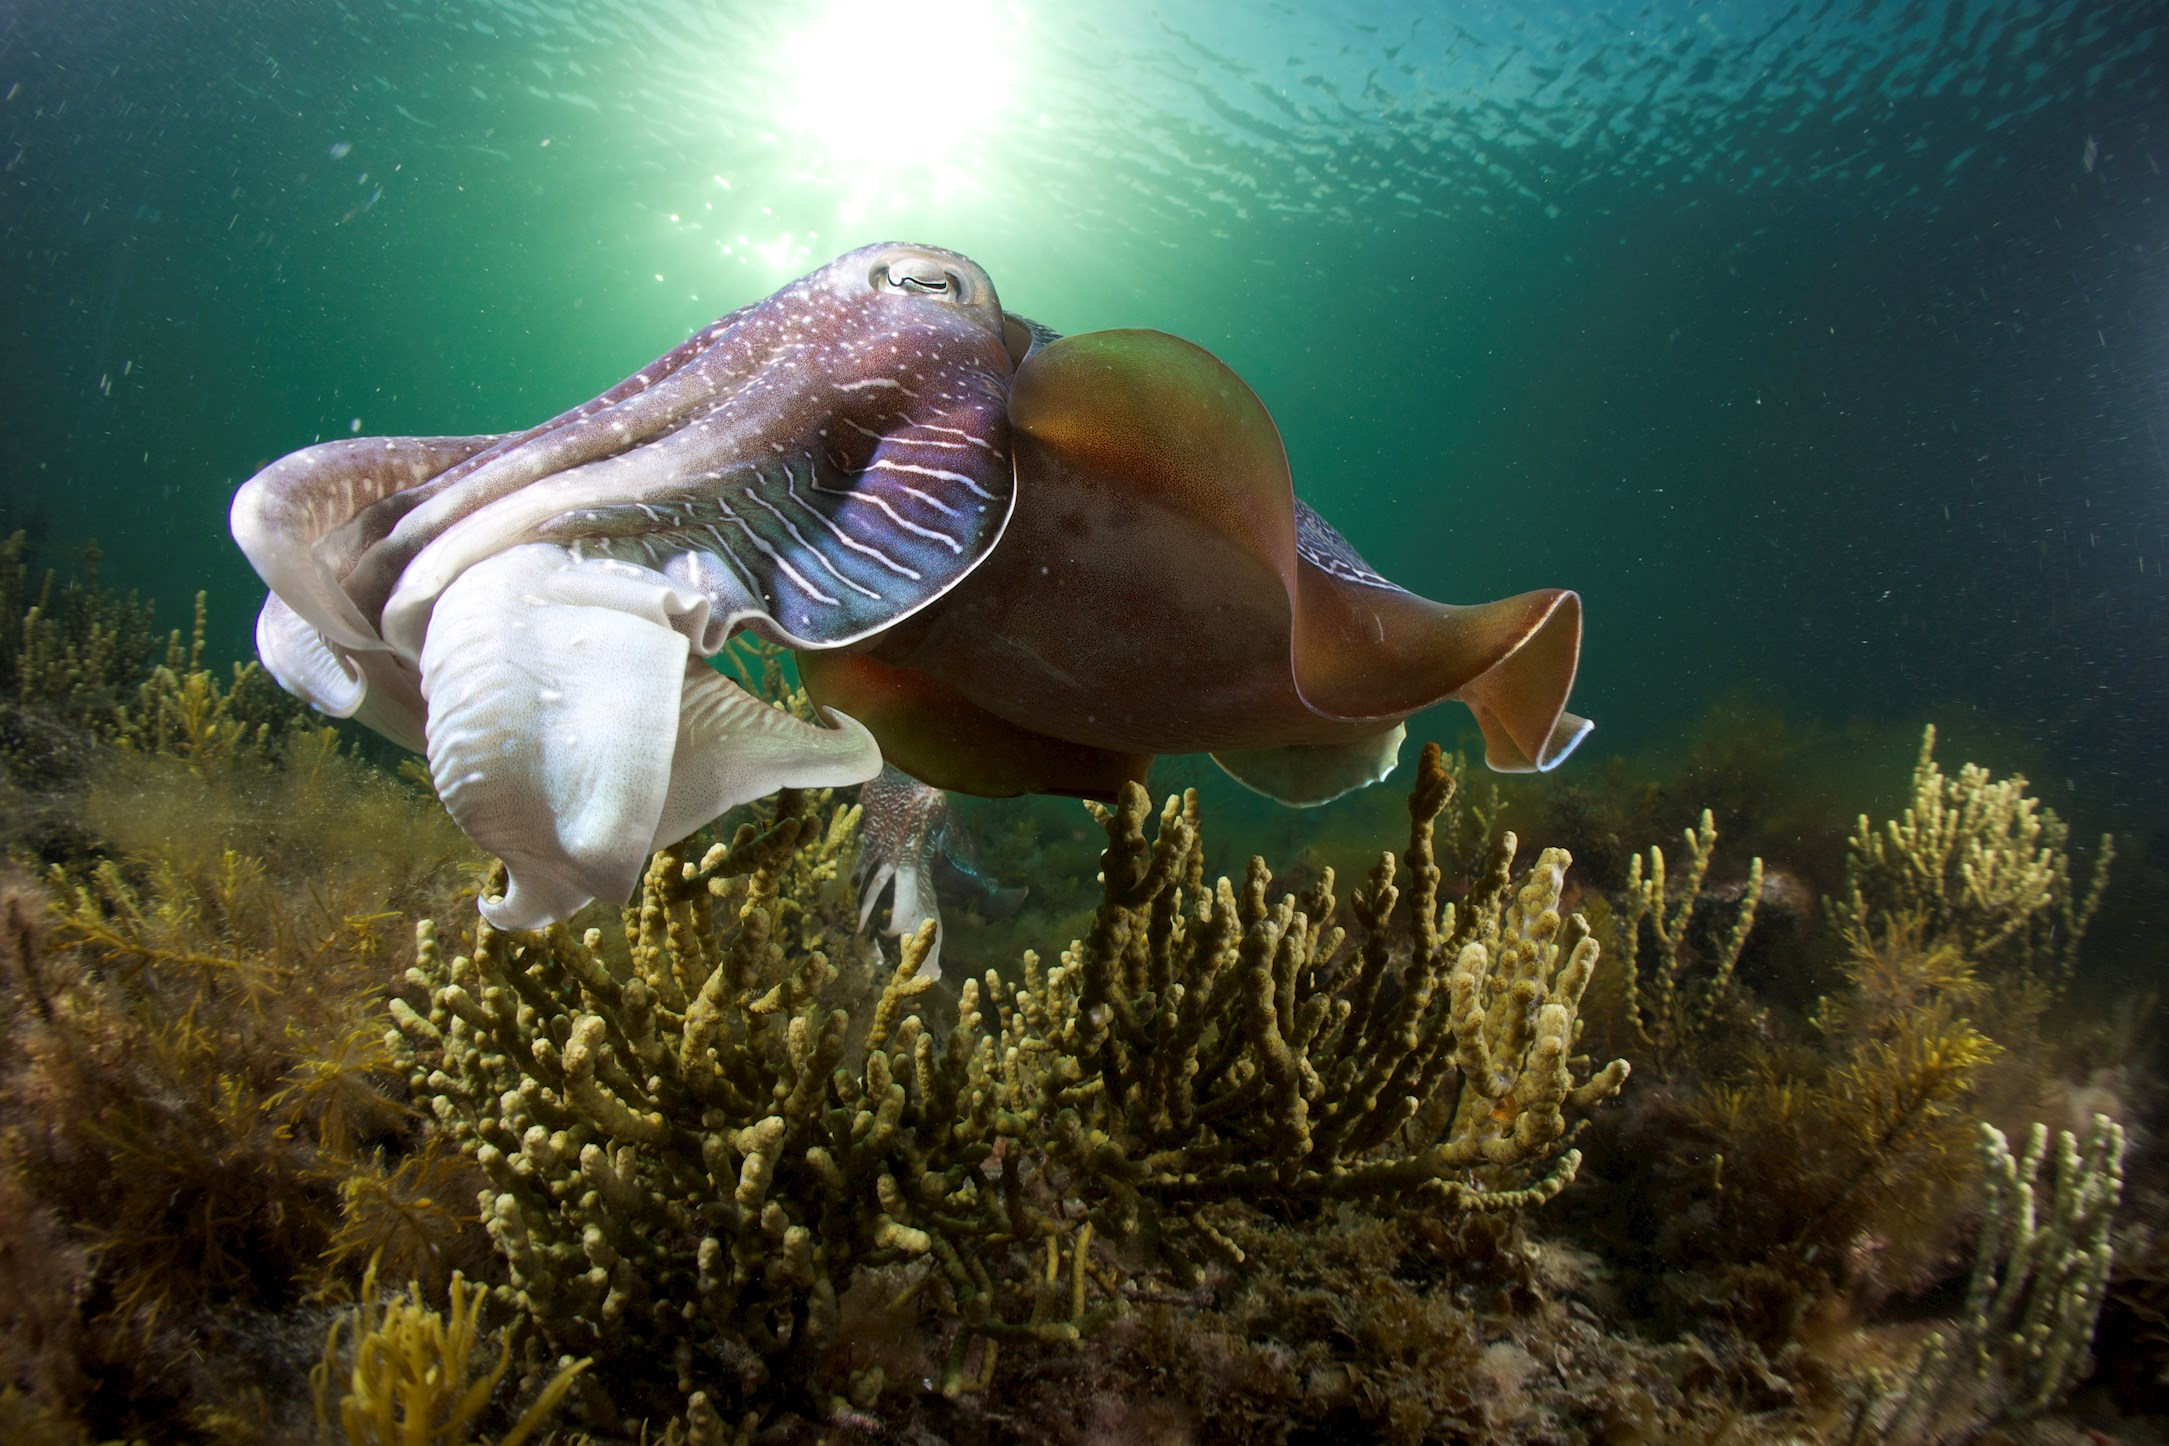 Cuttlefish in clear sunfiltered water off Stony Point, Whyalla SA